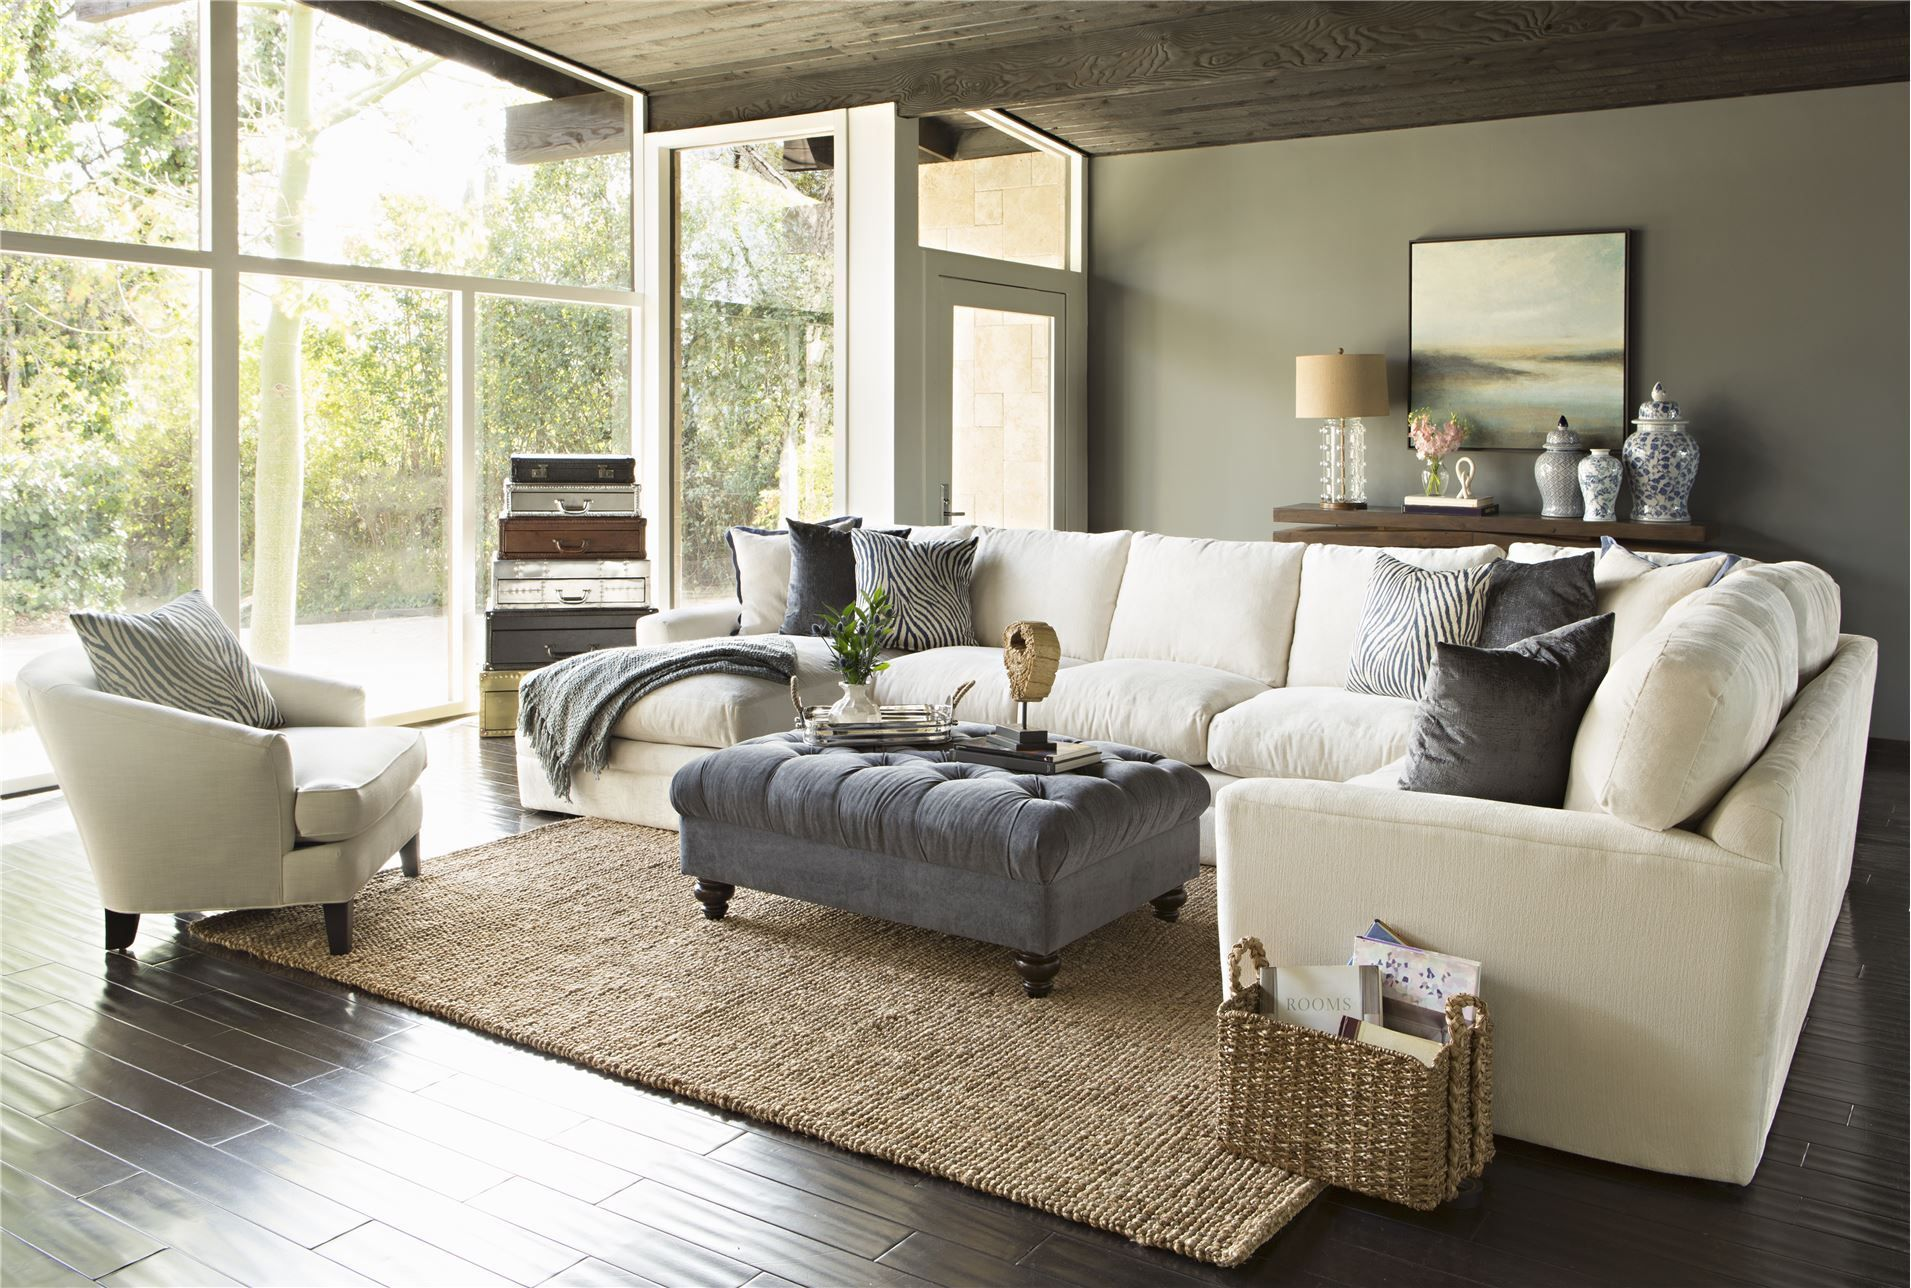 Glamour 3 Piece Sectional - Living Spaces   Living spaces ...